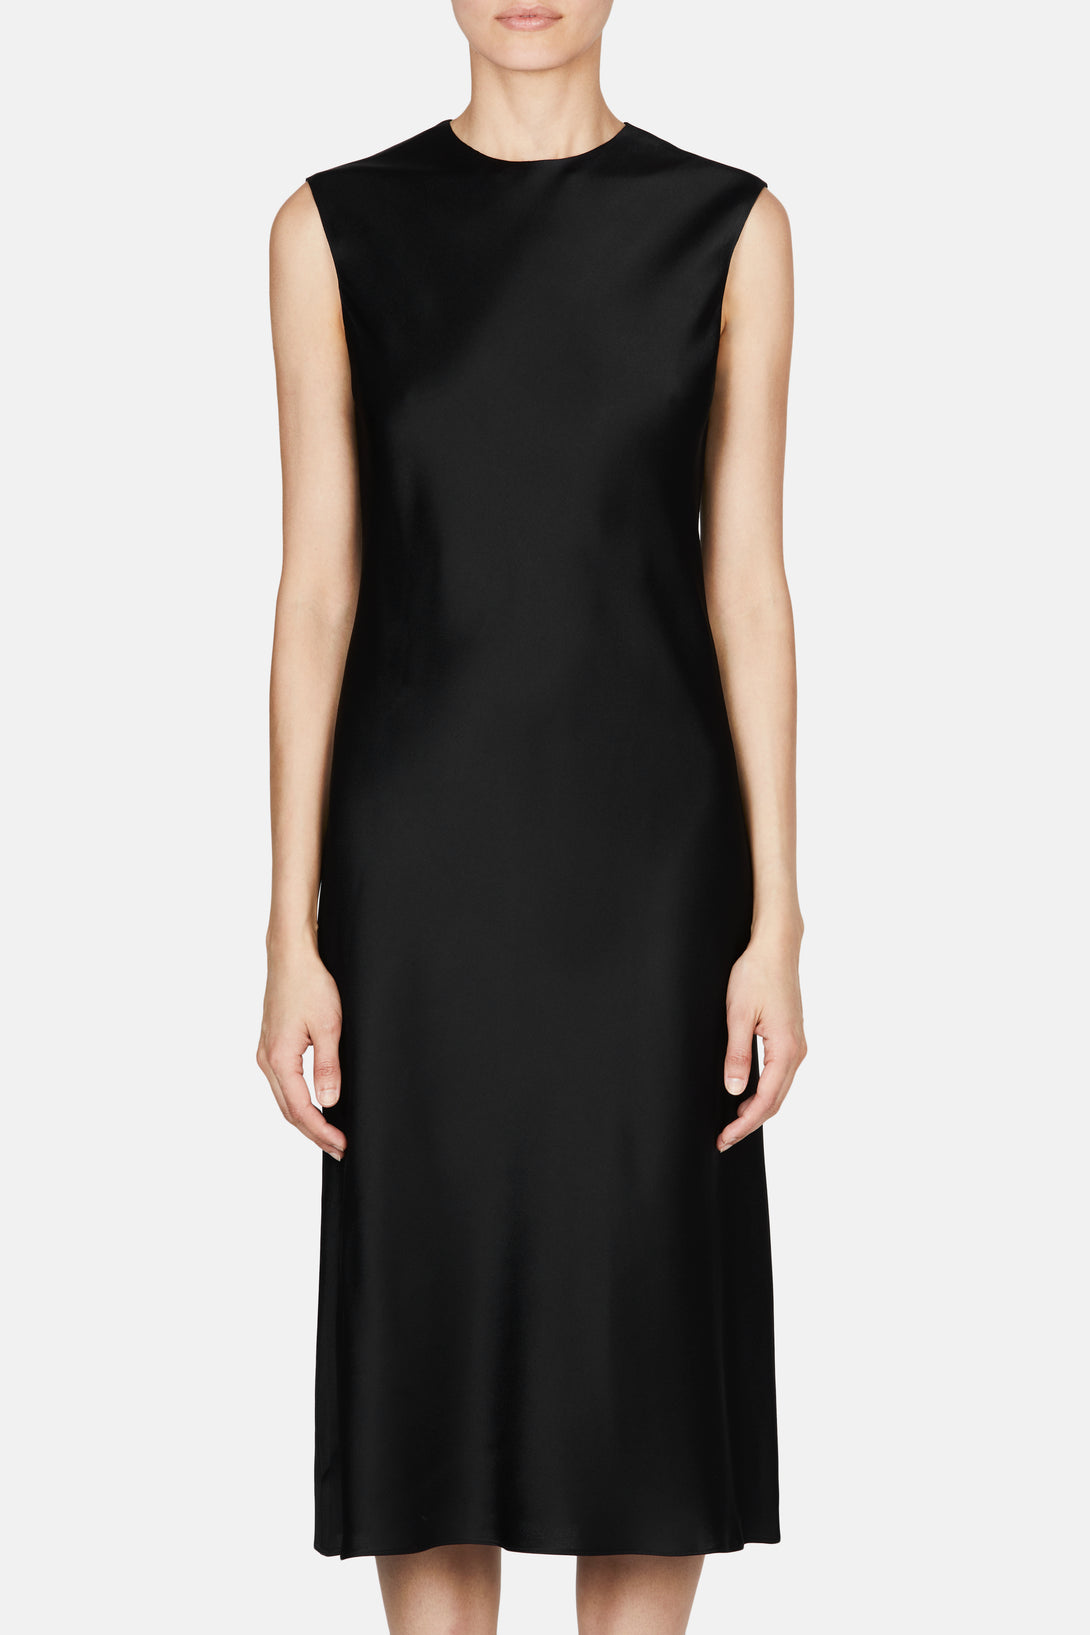 Dress 63 Classic Shell Dress - Black